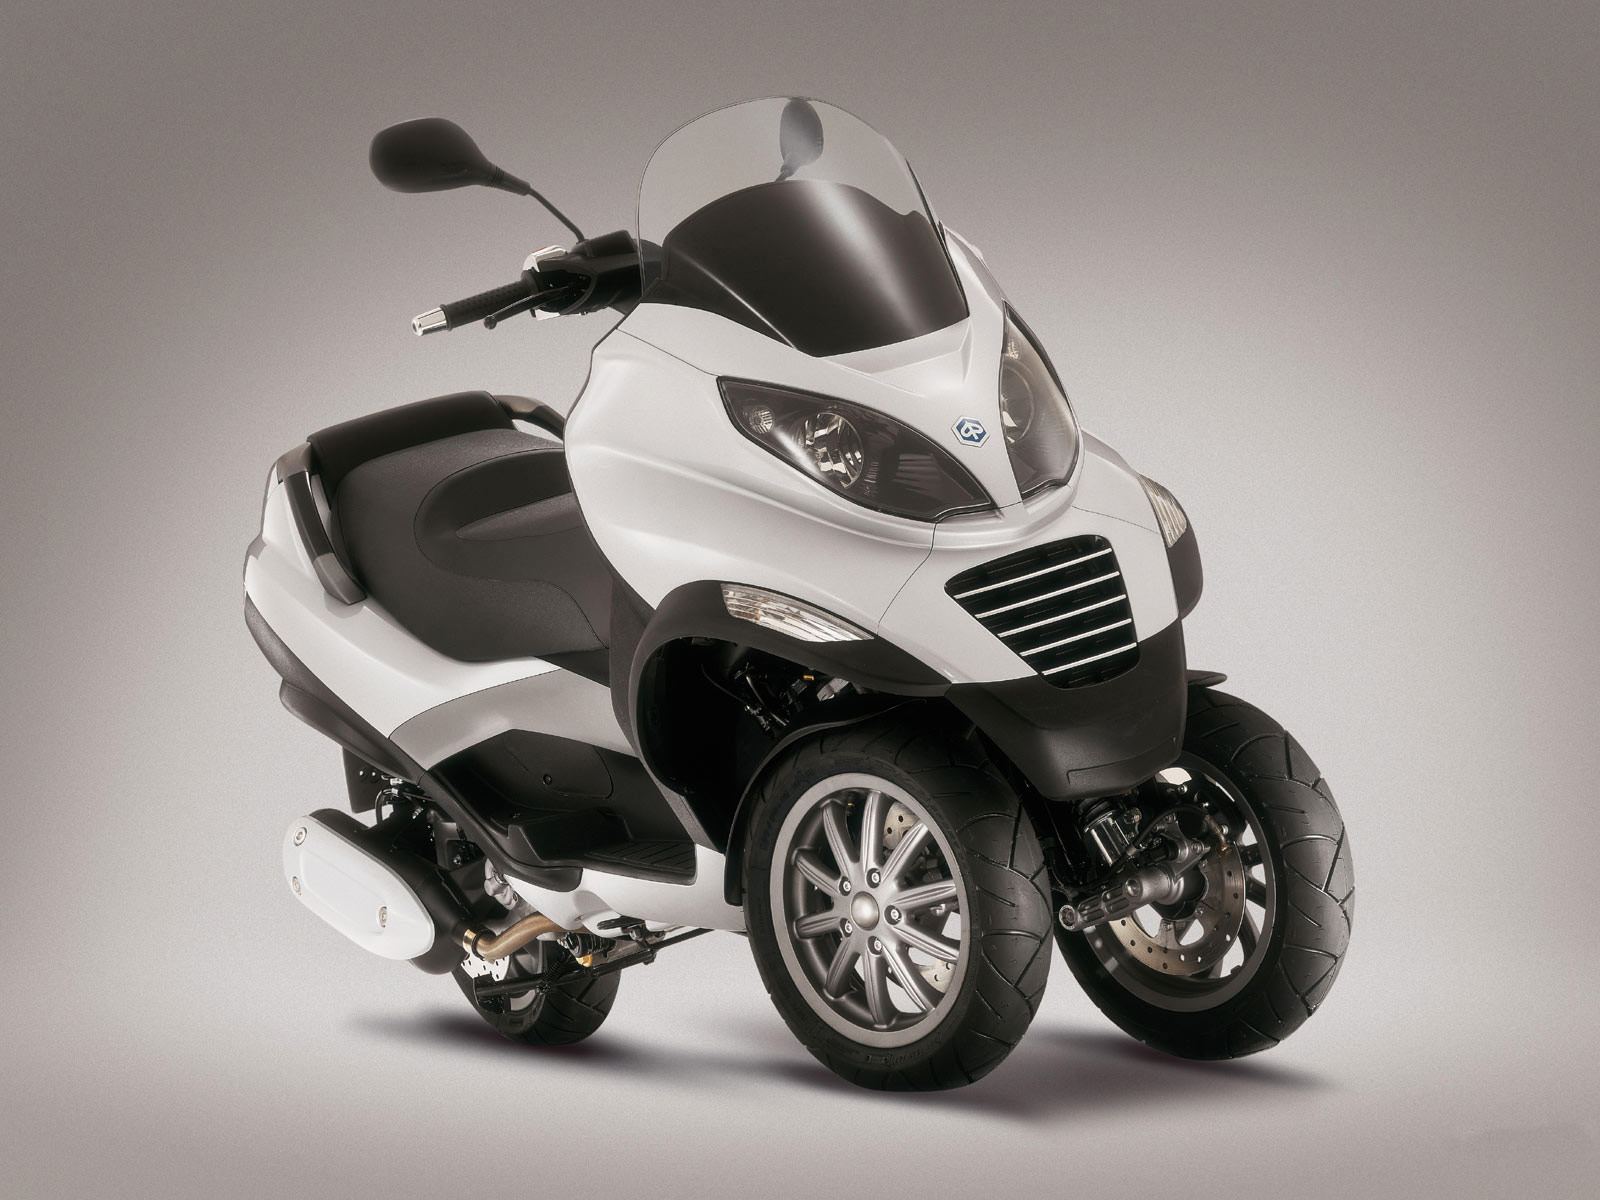 2008 piaggio mp3 125 accident lawyers scooter pictures. Black Bedroom Furniture Sets. Home Design Ideas